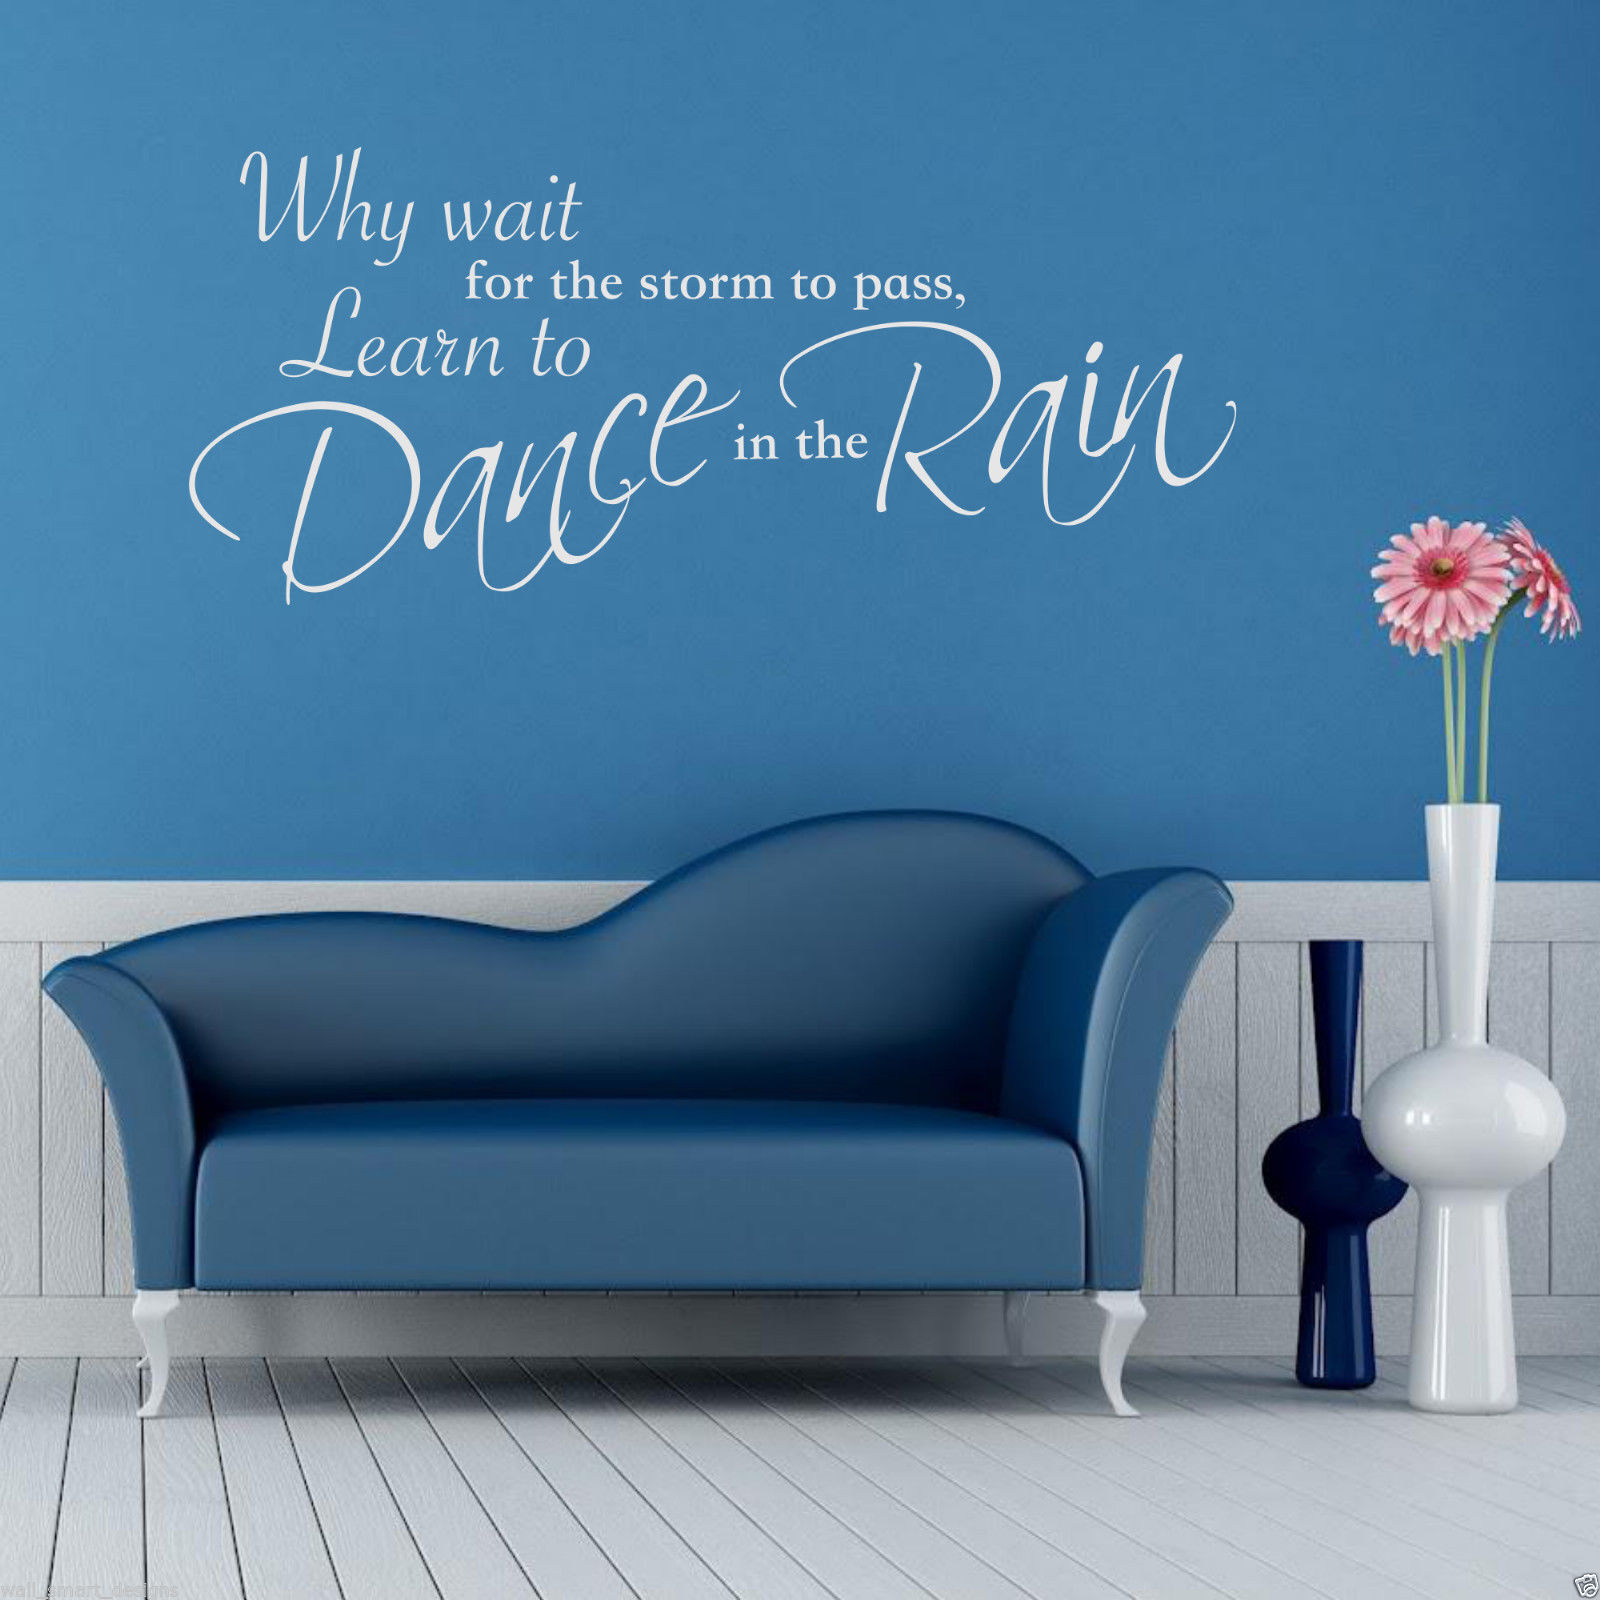 Wall Art Quotes Dance In The Rain : Dance in the rain wall art sticker lounge quote decal